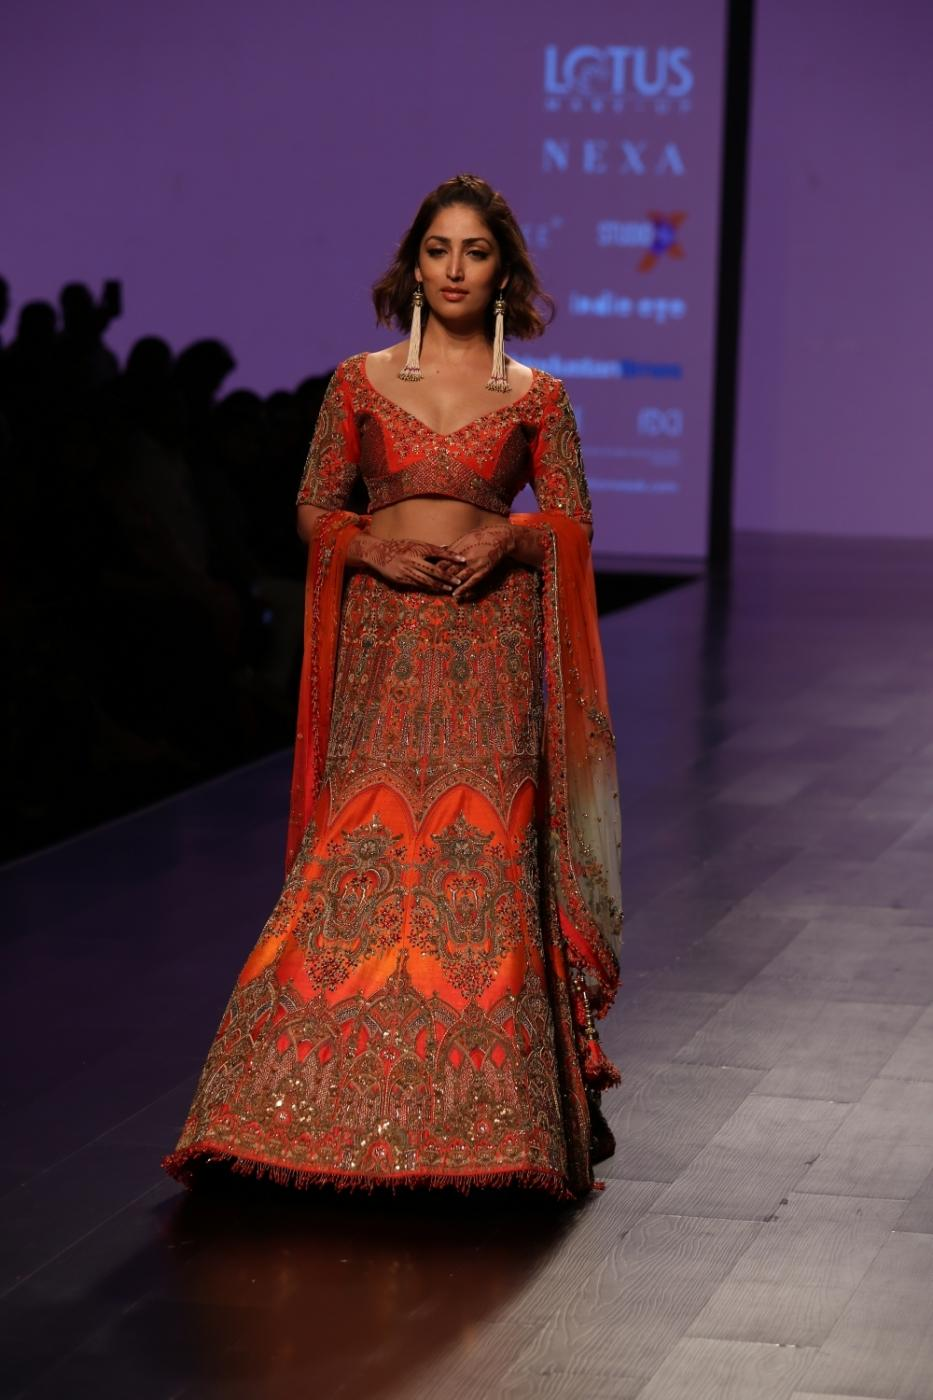 New Delhi: Actress Yami Gautam showcase creations of designer WNW during Lotus Make-Up India Fashion Week Spring Summer 2019 in New Delhi on Oct 12, 2018.(Photo: Amlan Paliwal/IANS) by .